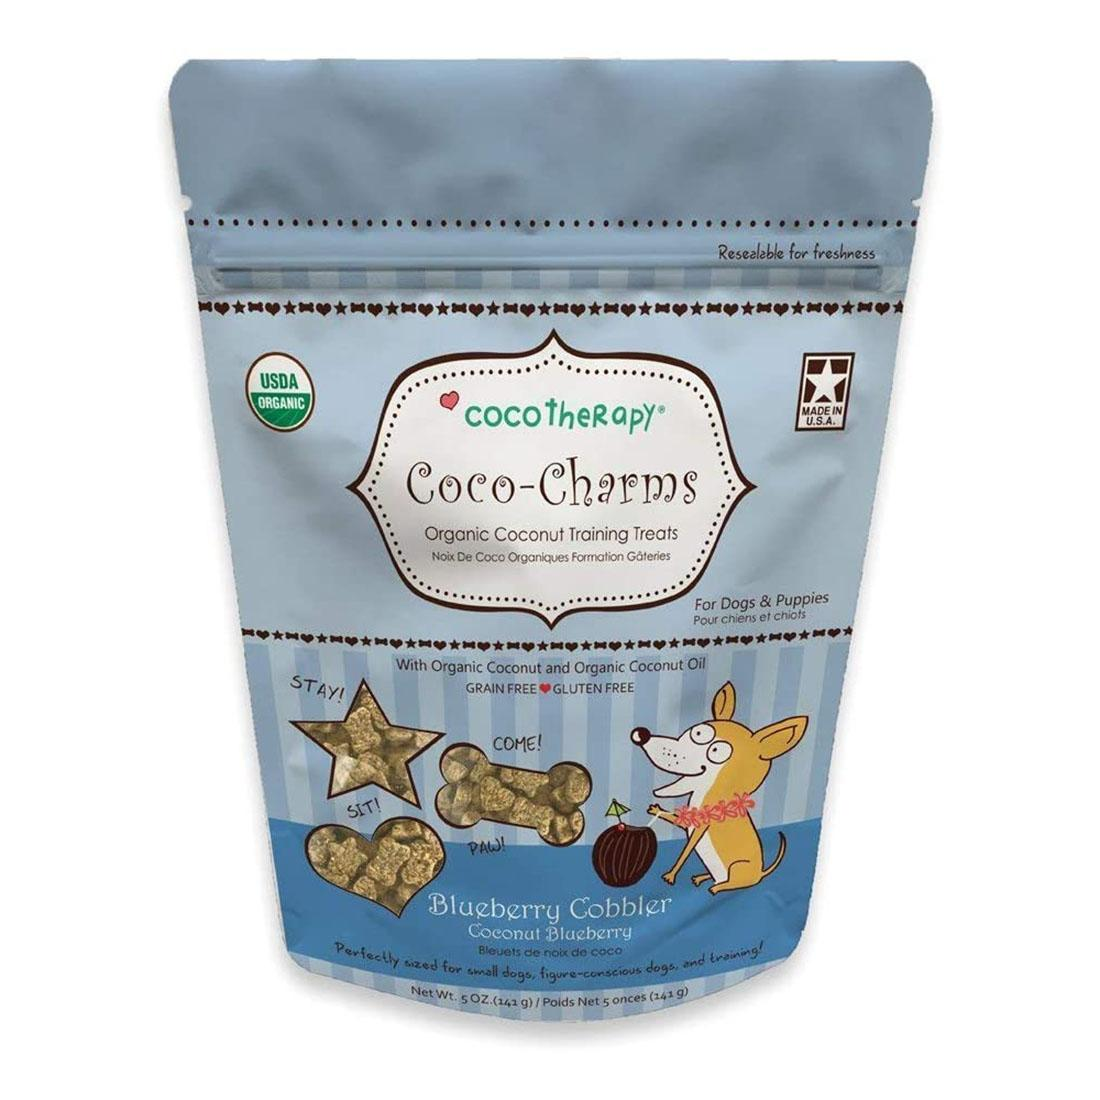 CocoTherapy Coco-Charms Organic Training Dog Treats - Coconut Blueberry Cobbler